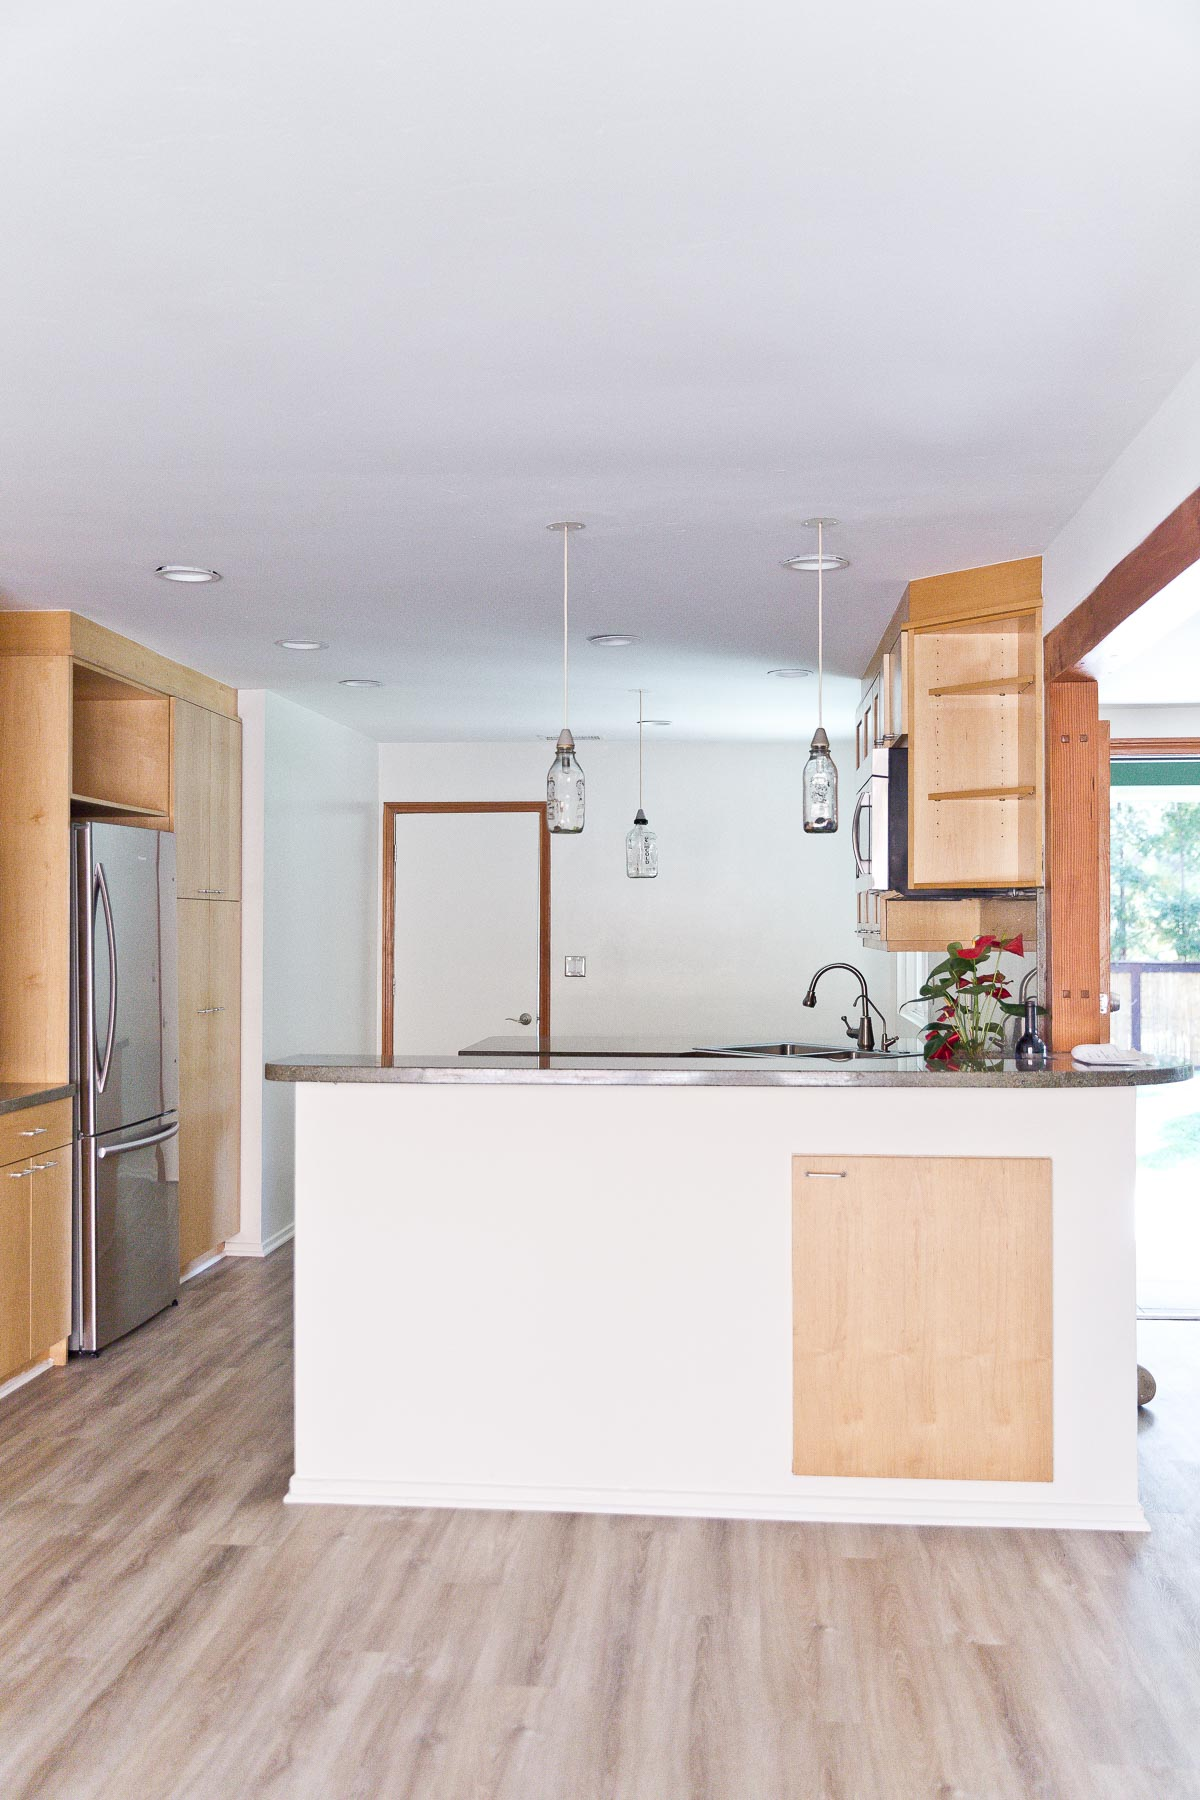 Image of empty kitchen with minimal wood cabinets and white walls.